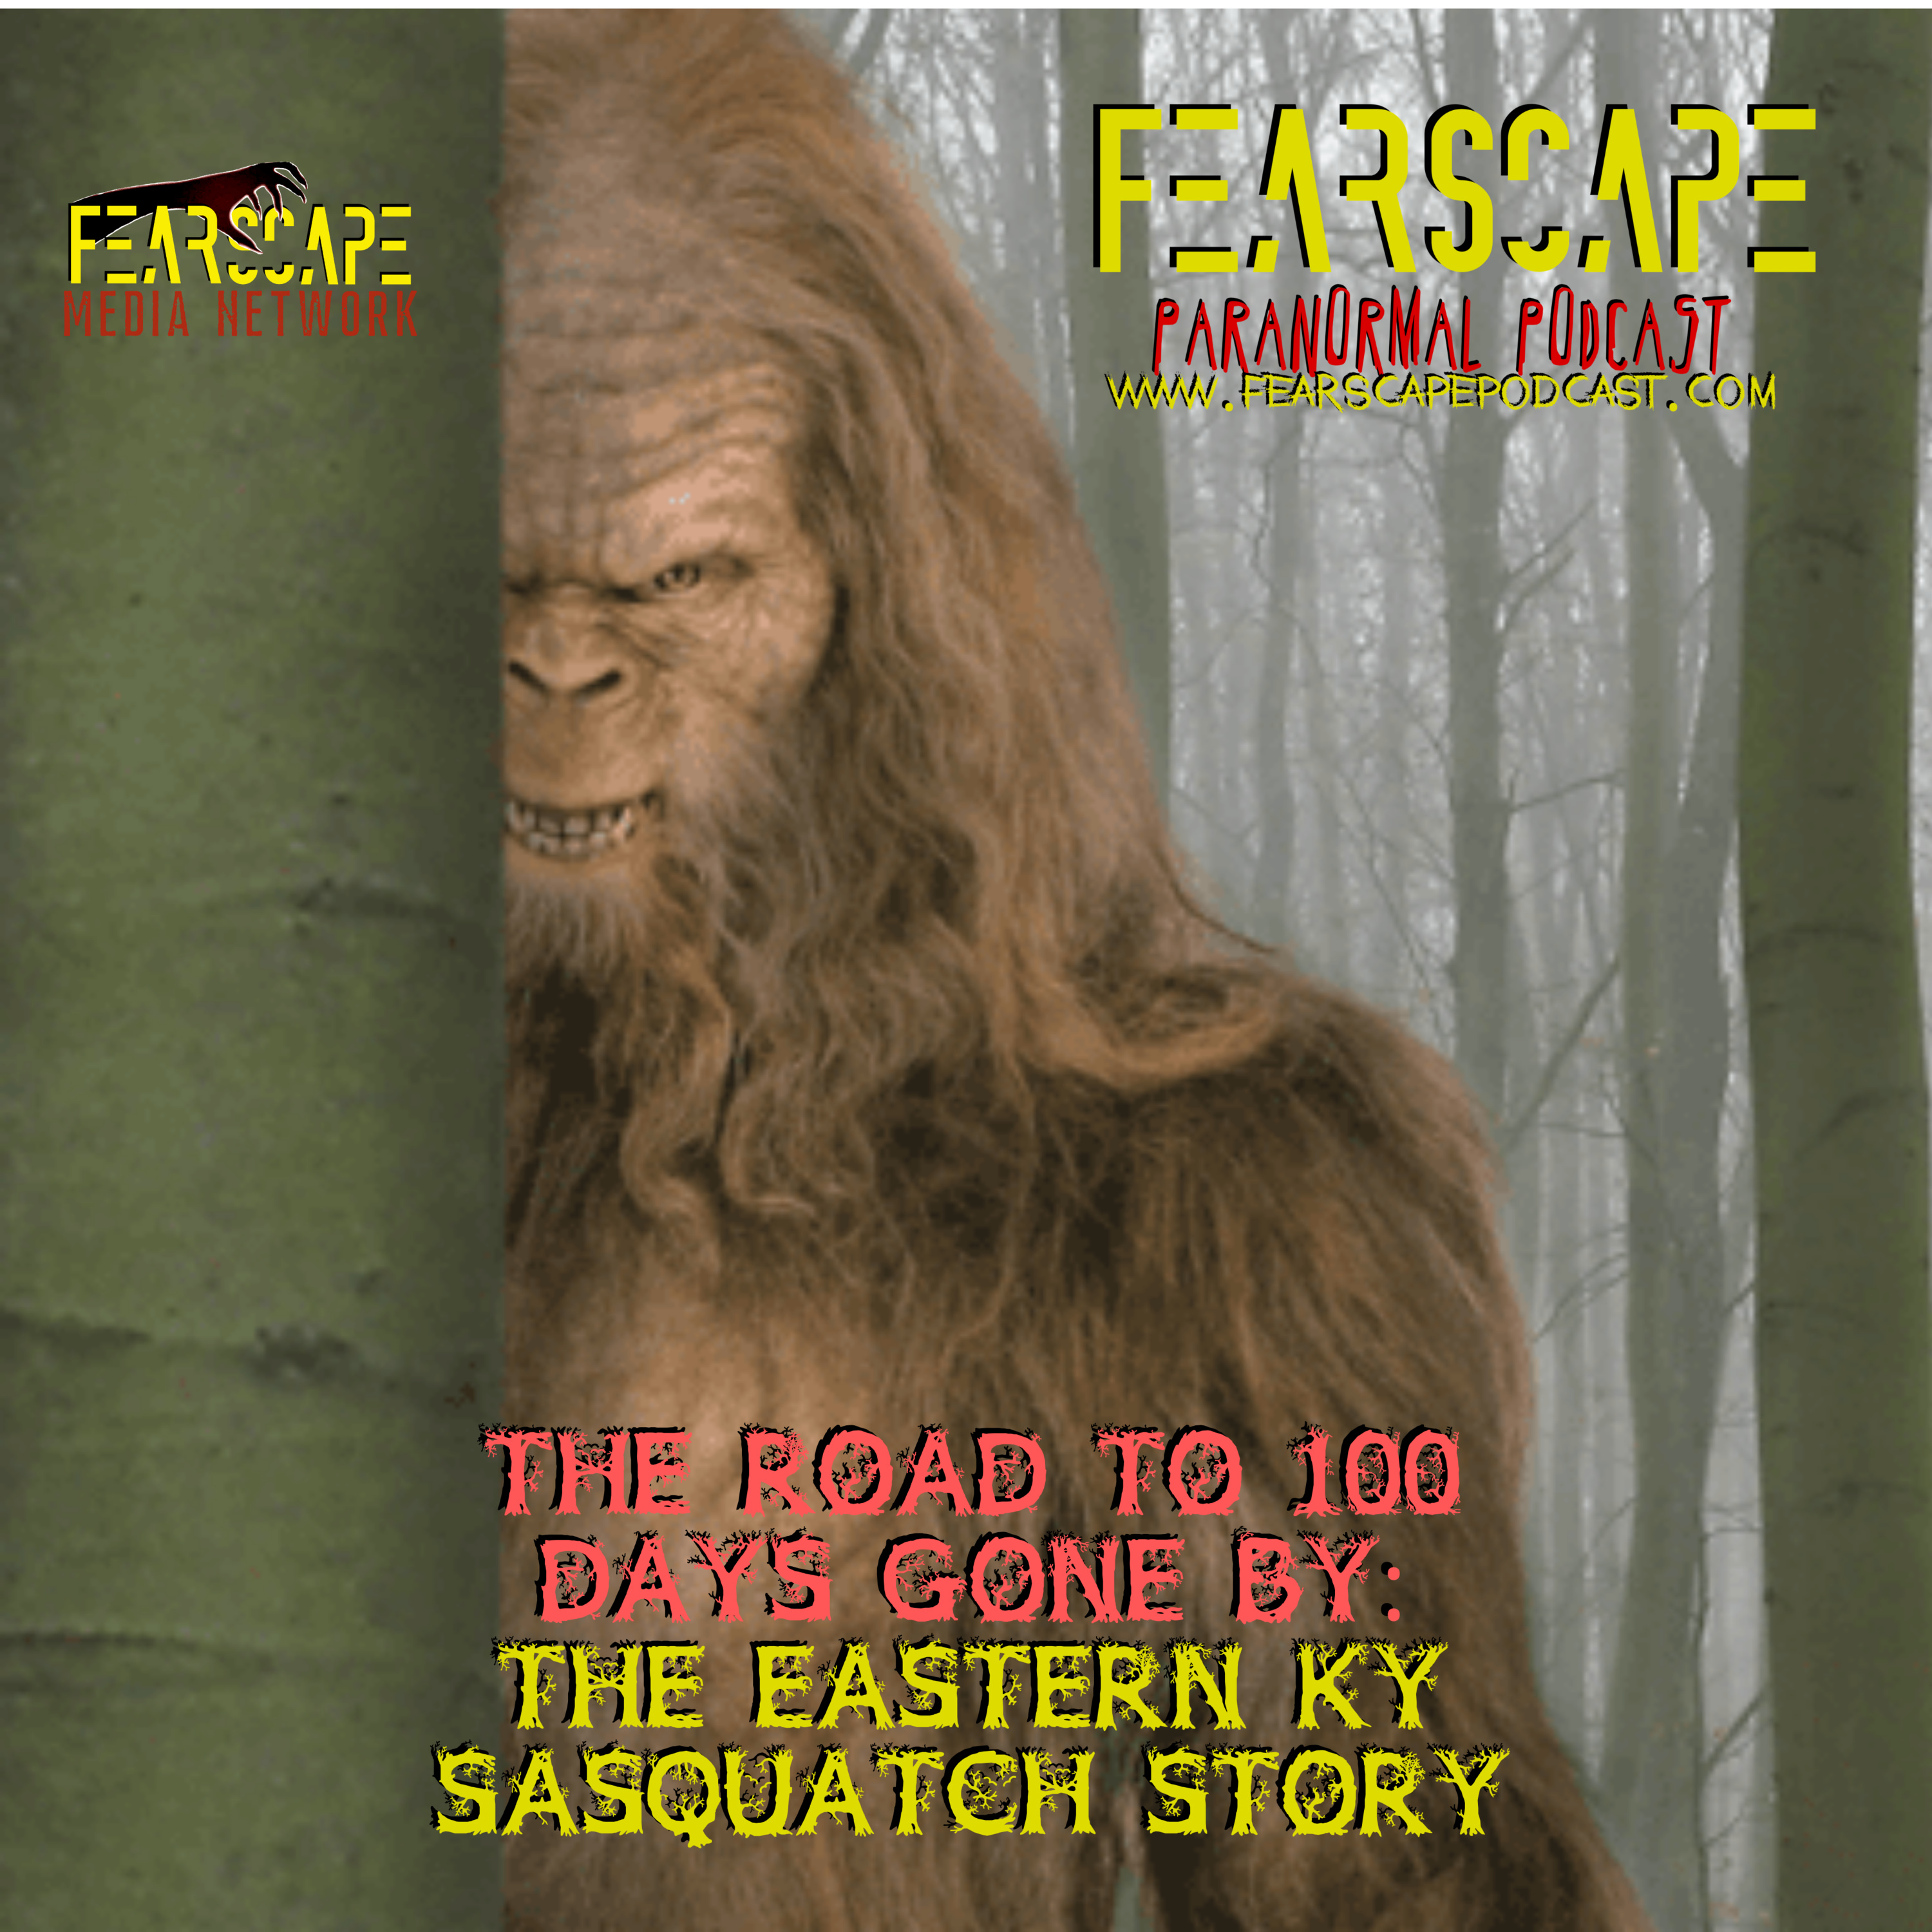 The Road to 100: Days Gone By – The Eastern KY Sasquatch Story